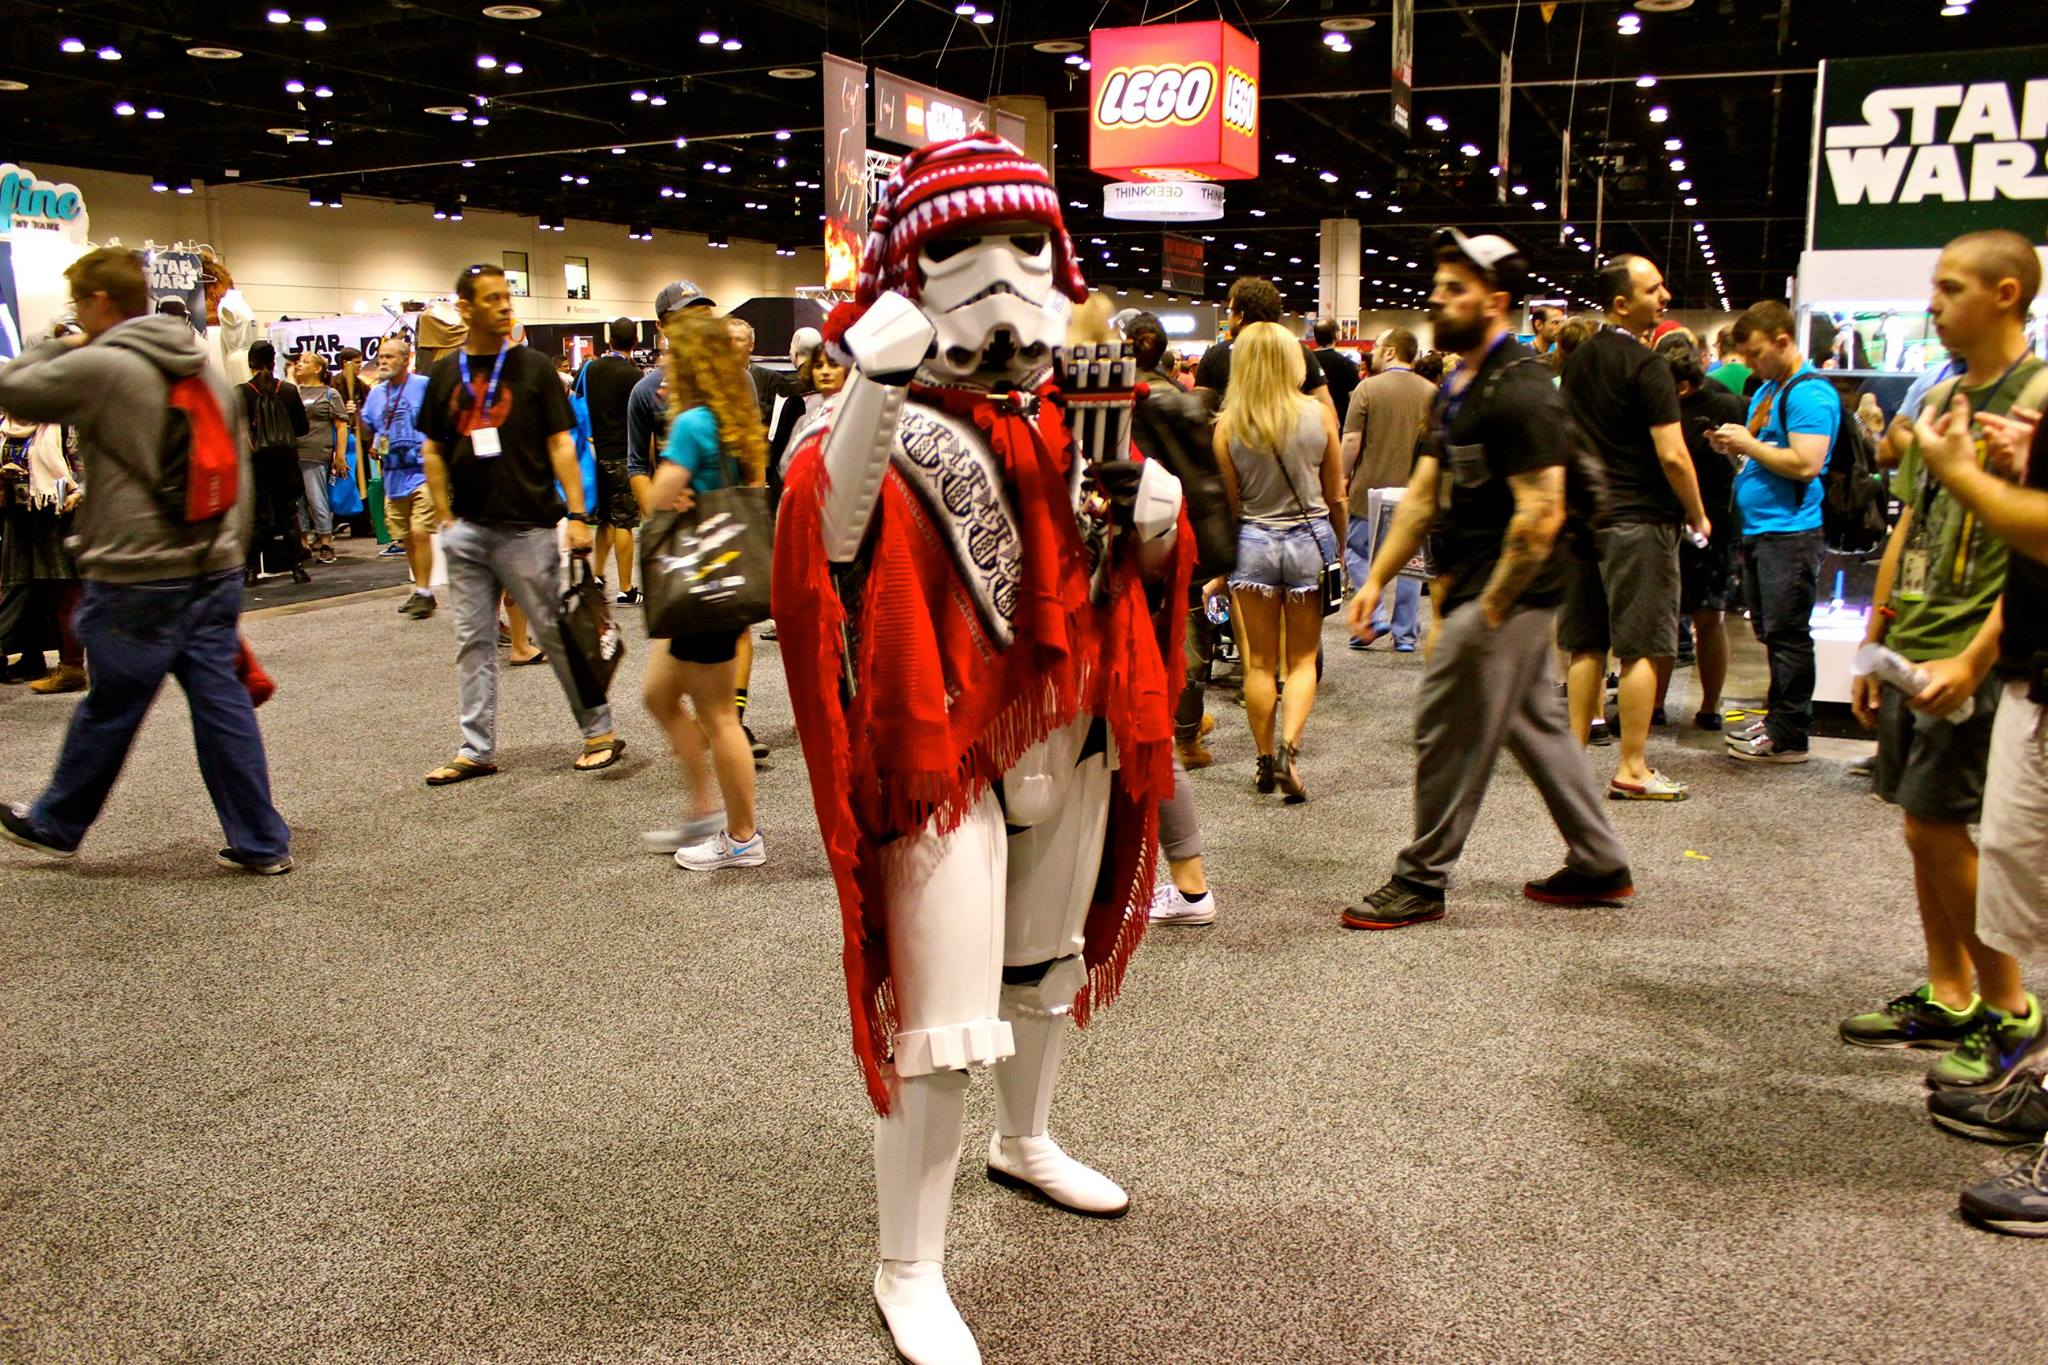 Meet the Peruvian Cosplayers Who Conquered This Year's Star Wars Celebration